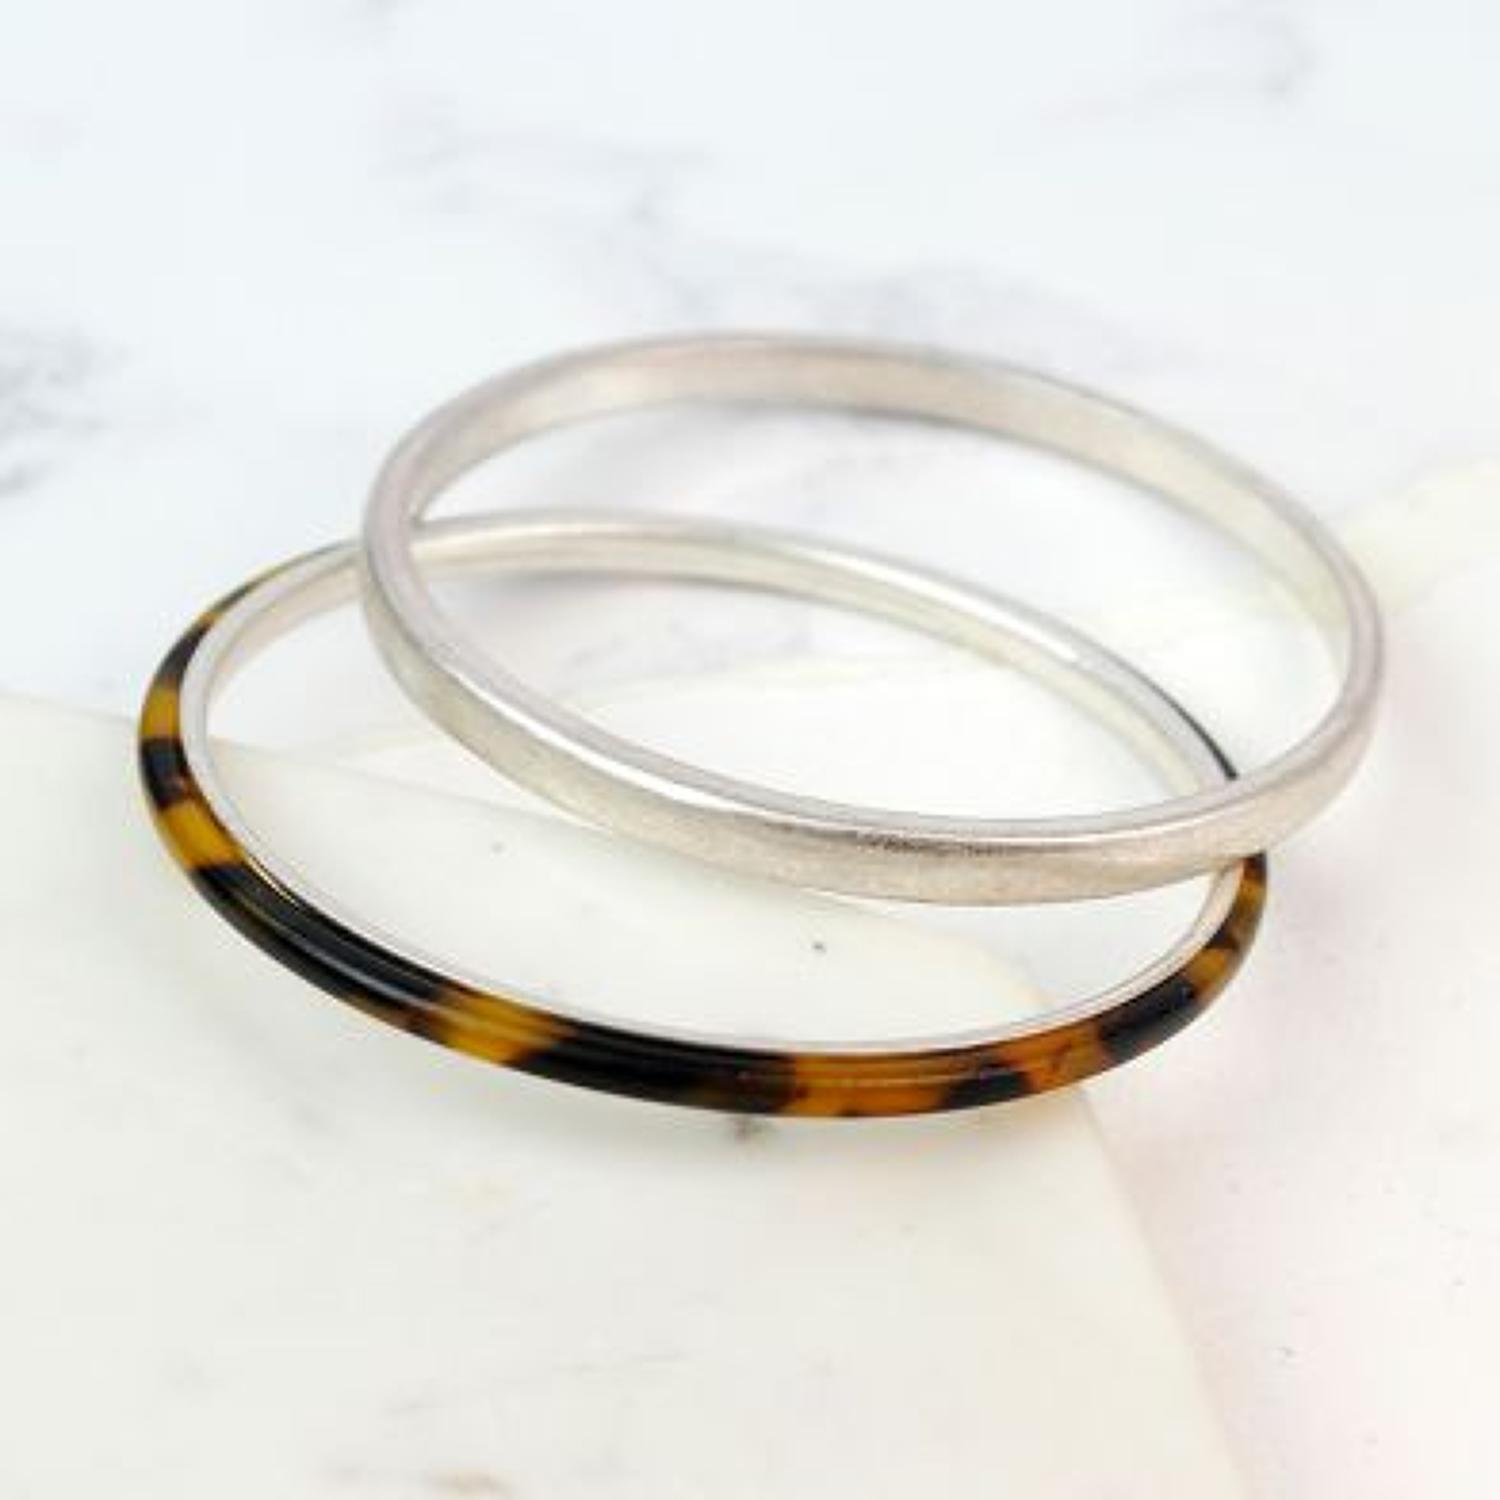 POM - Worn silver/tortoise shell 2 bangle set